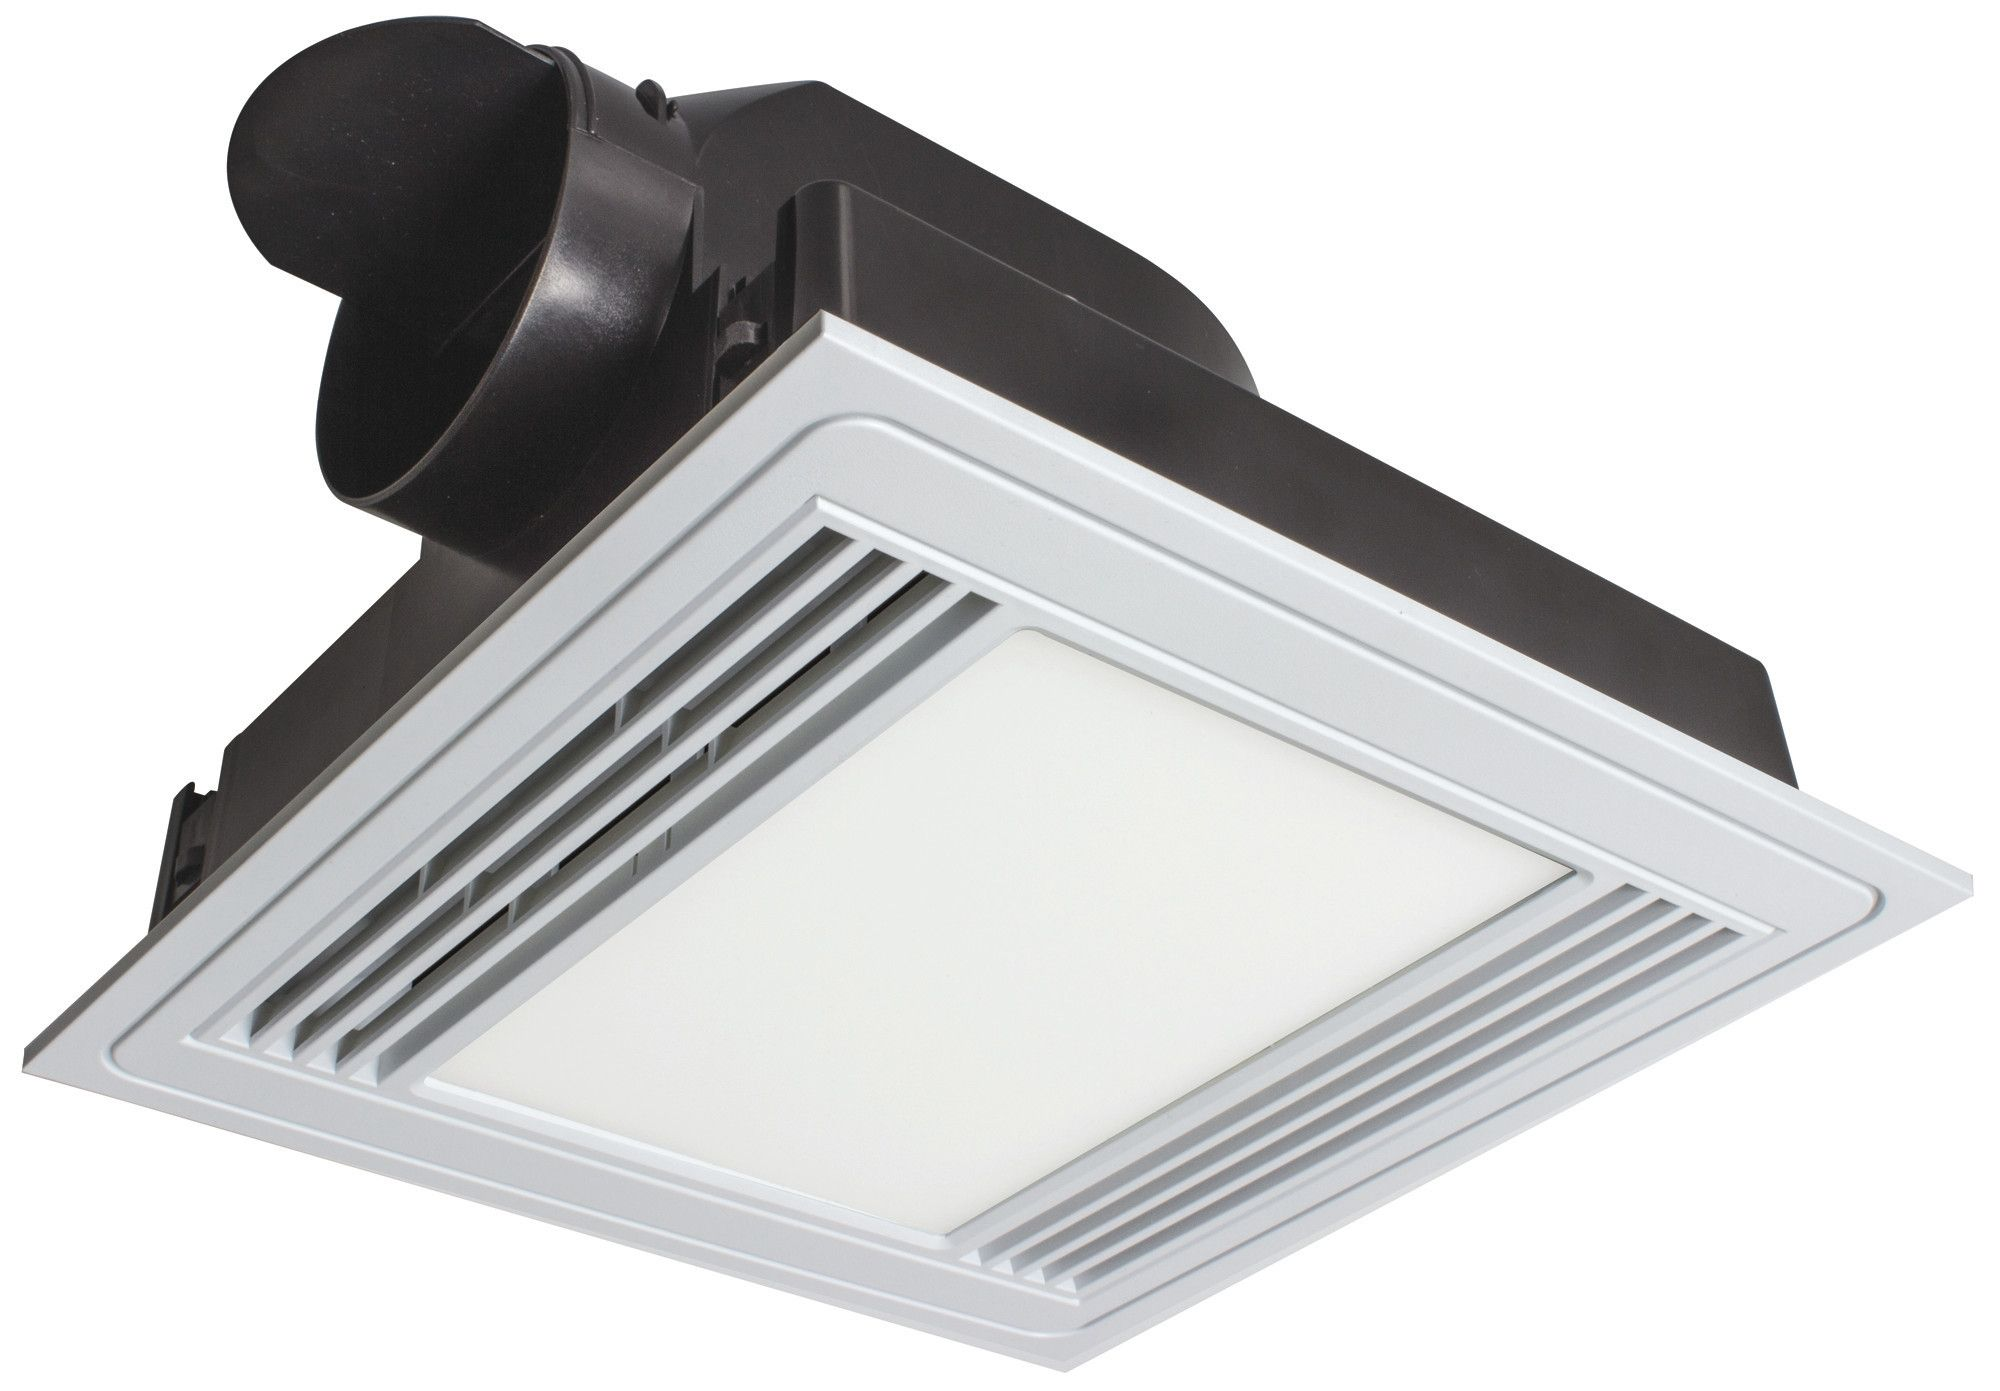 Tercel Square Bathroom Exhaust Fan With Light Brilliant